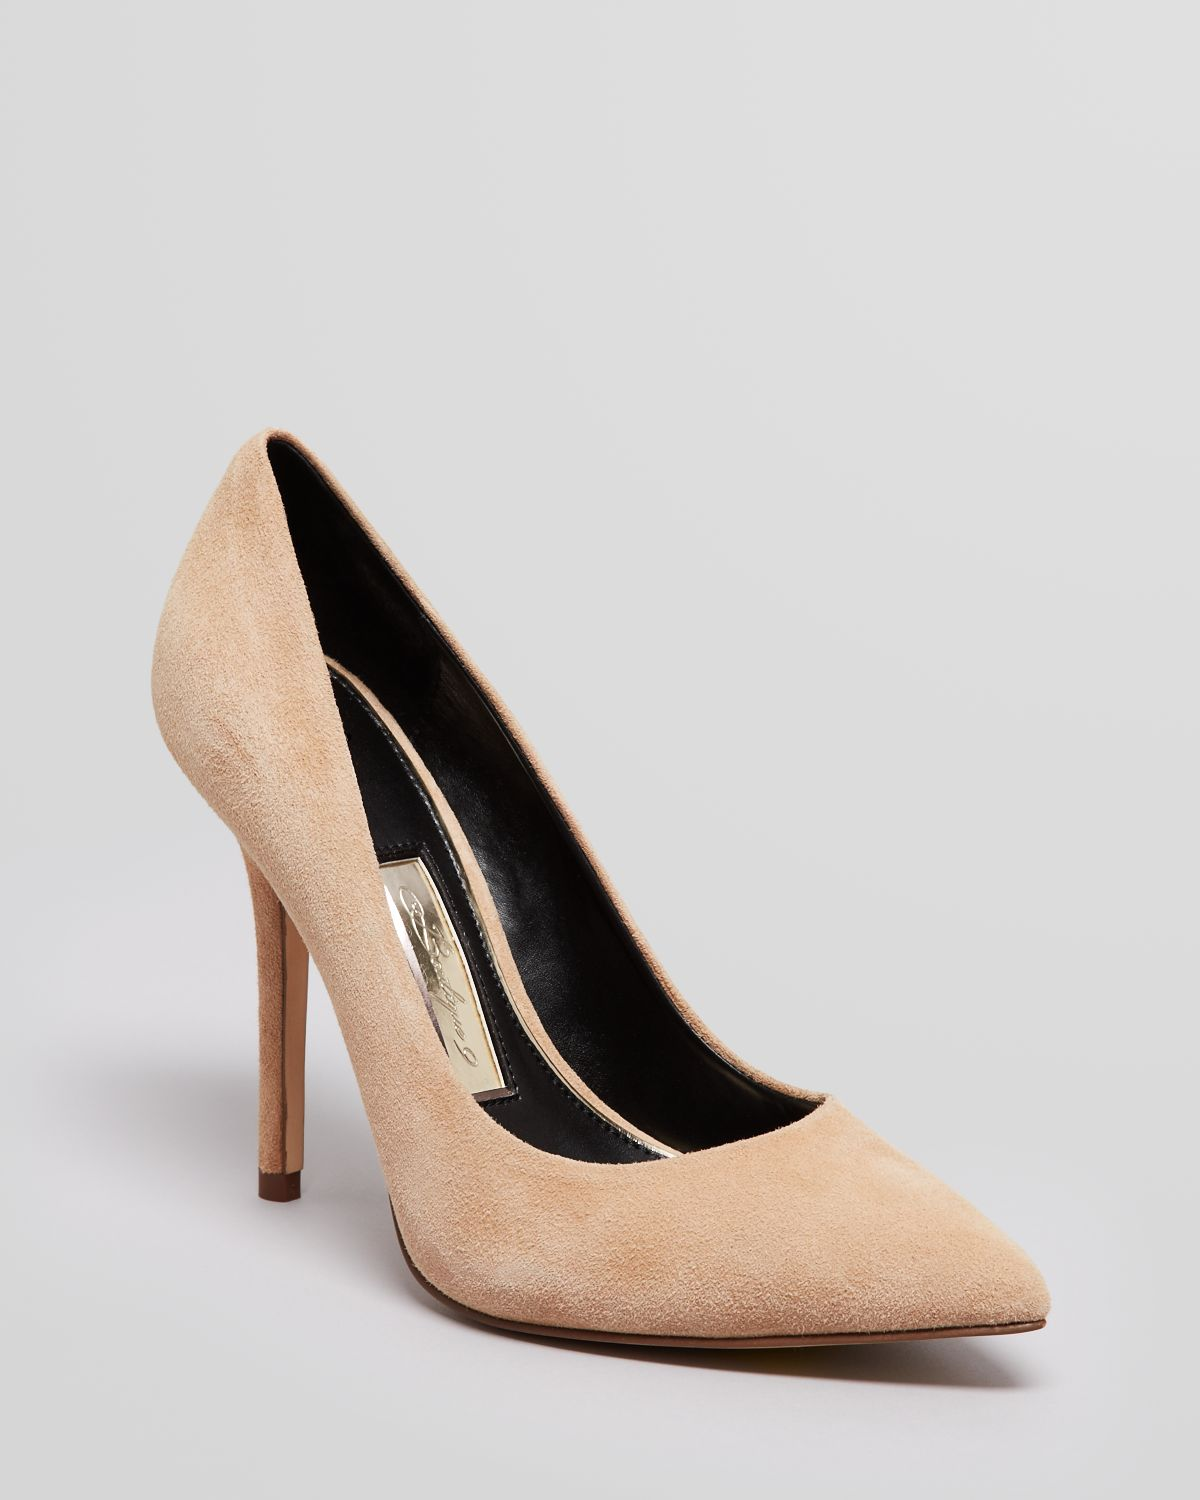 Boutique 9 Pointed Toe Pumps - Justine | Bloomingdale's